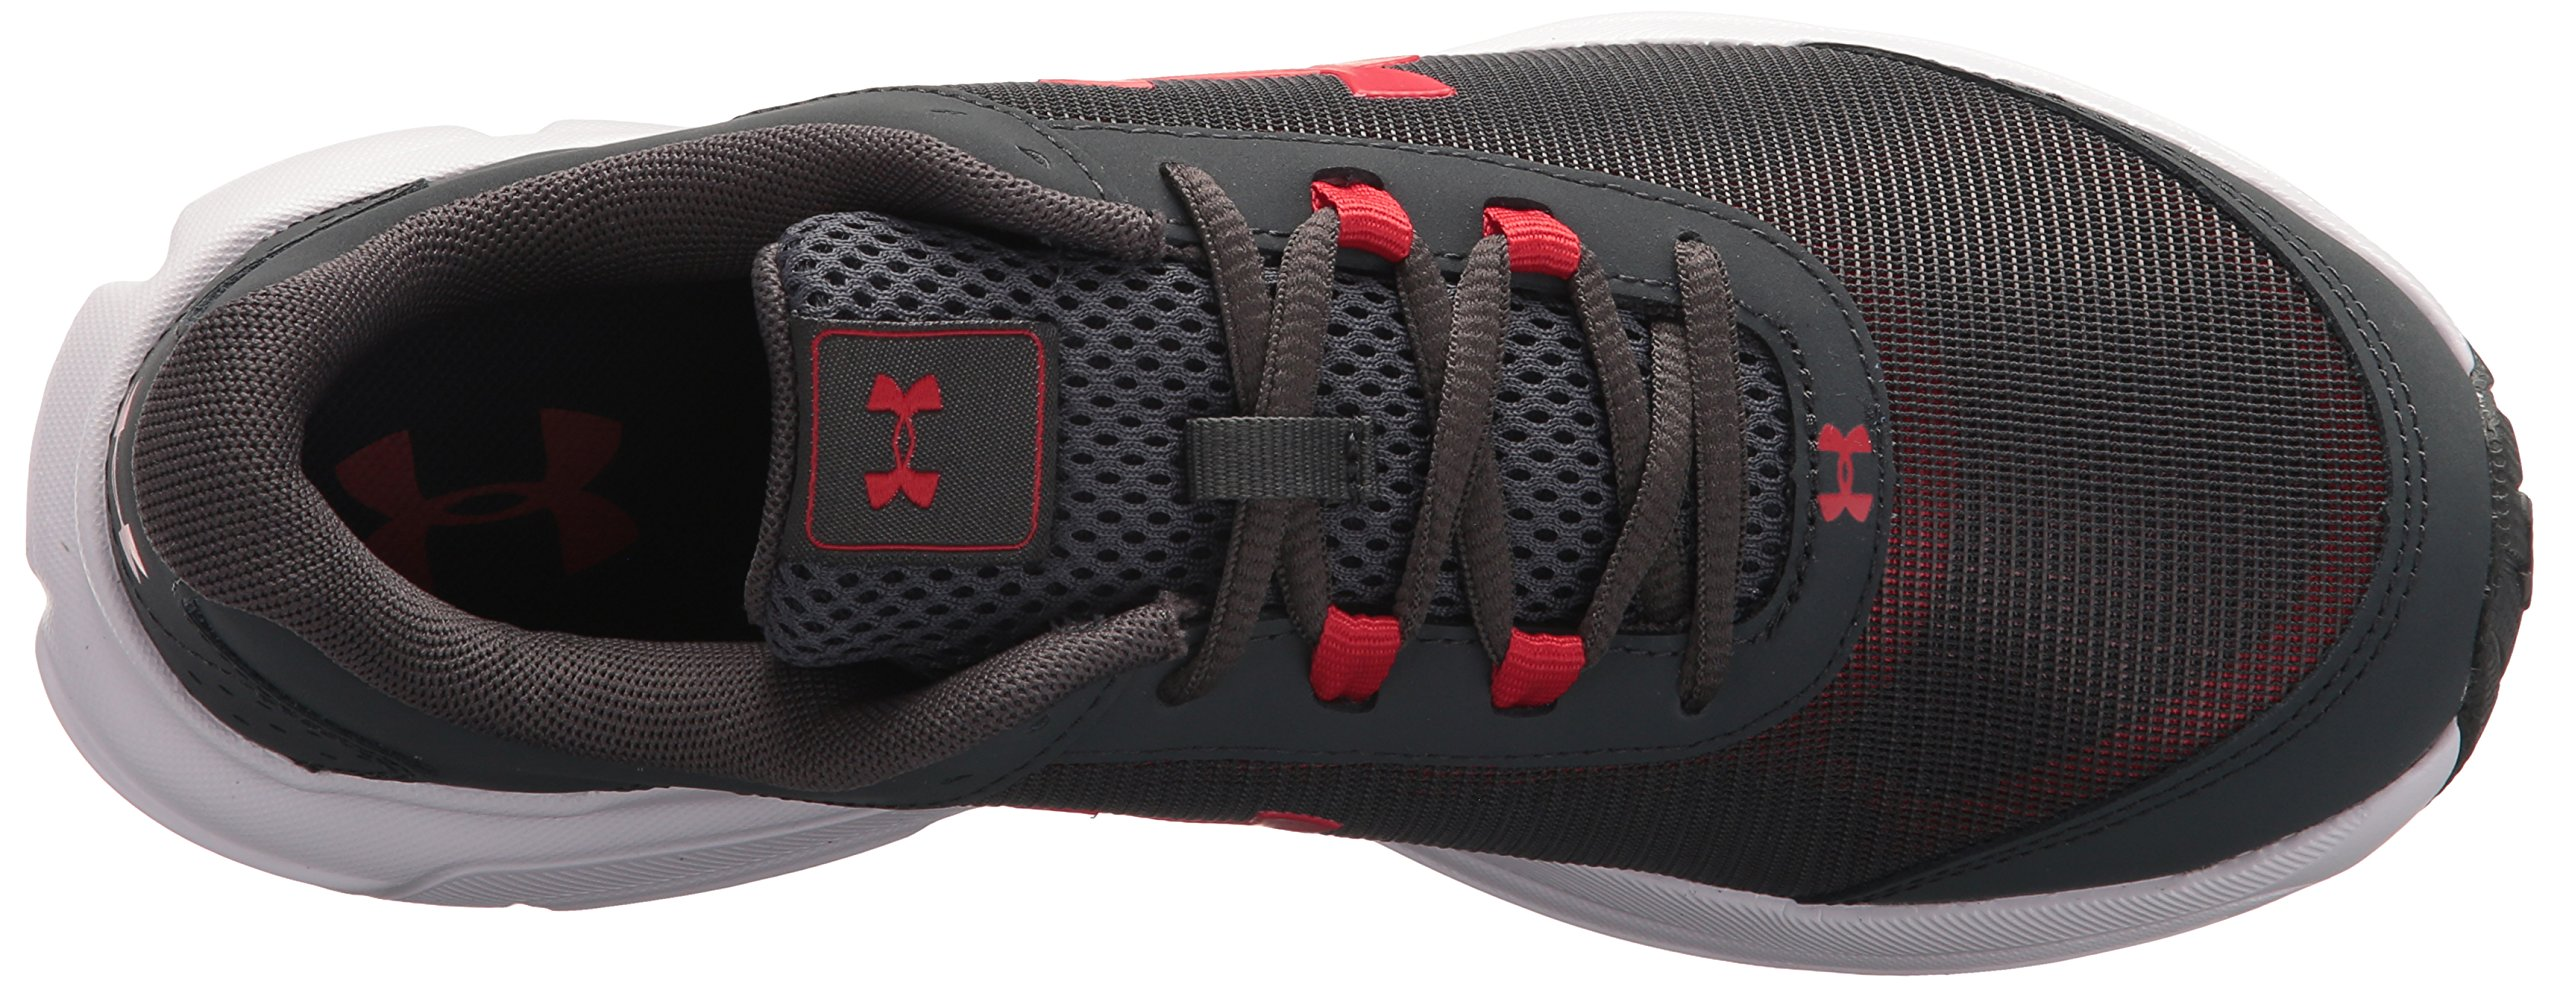 Under Armour Kids' Grade School Rave 2 Sneaker,Stealth Gray (100)/White,3.5 M US by Under Armour (Image #8)